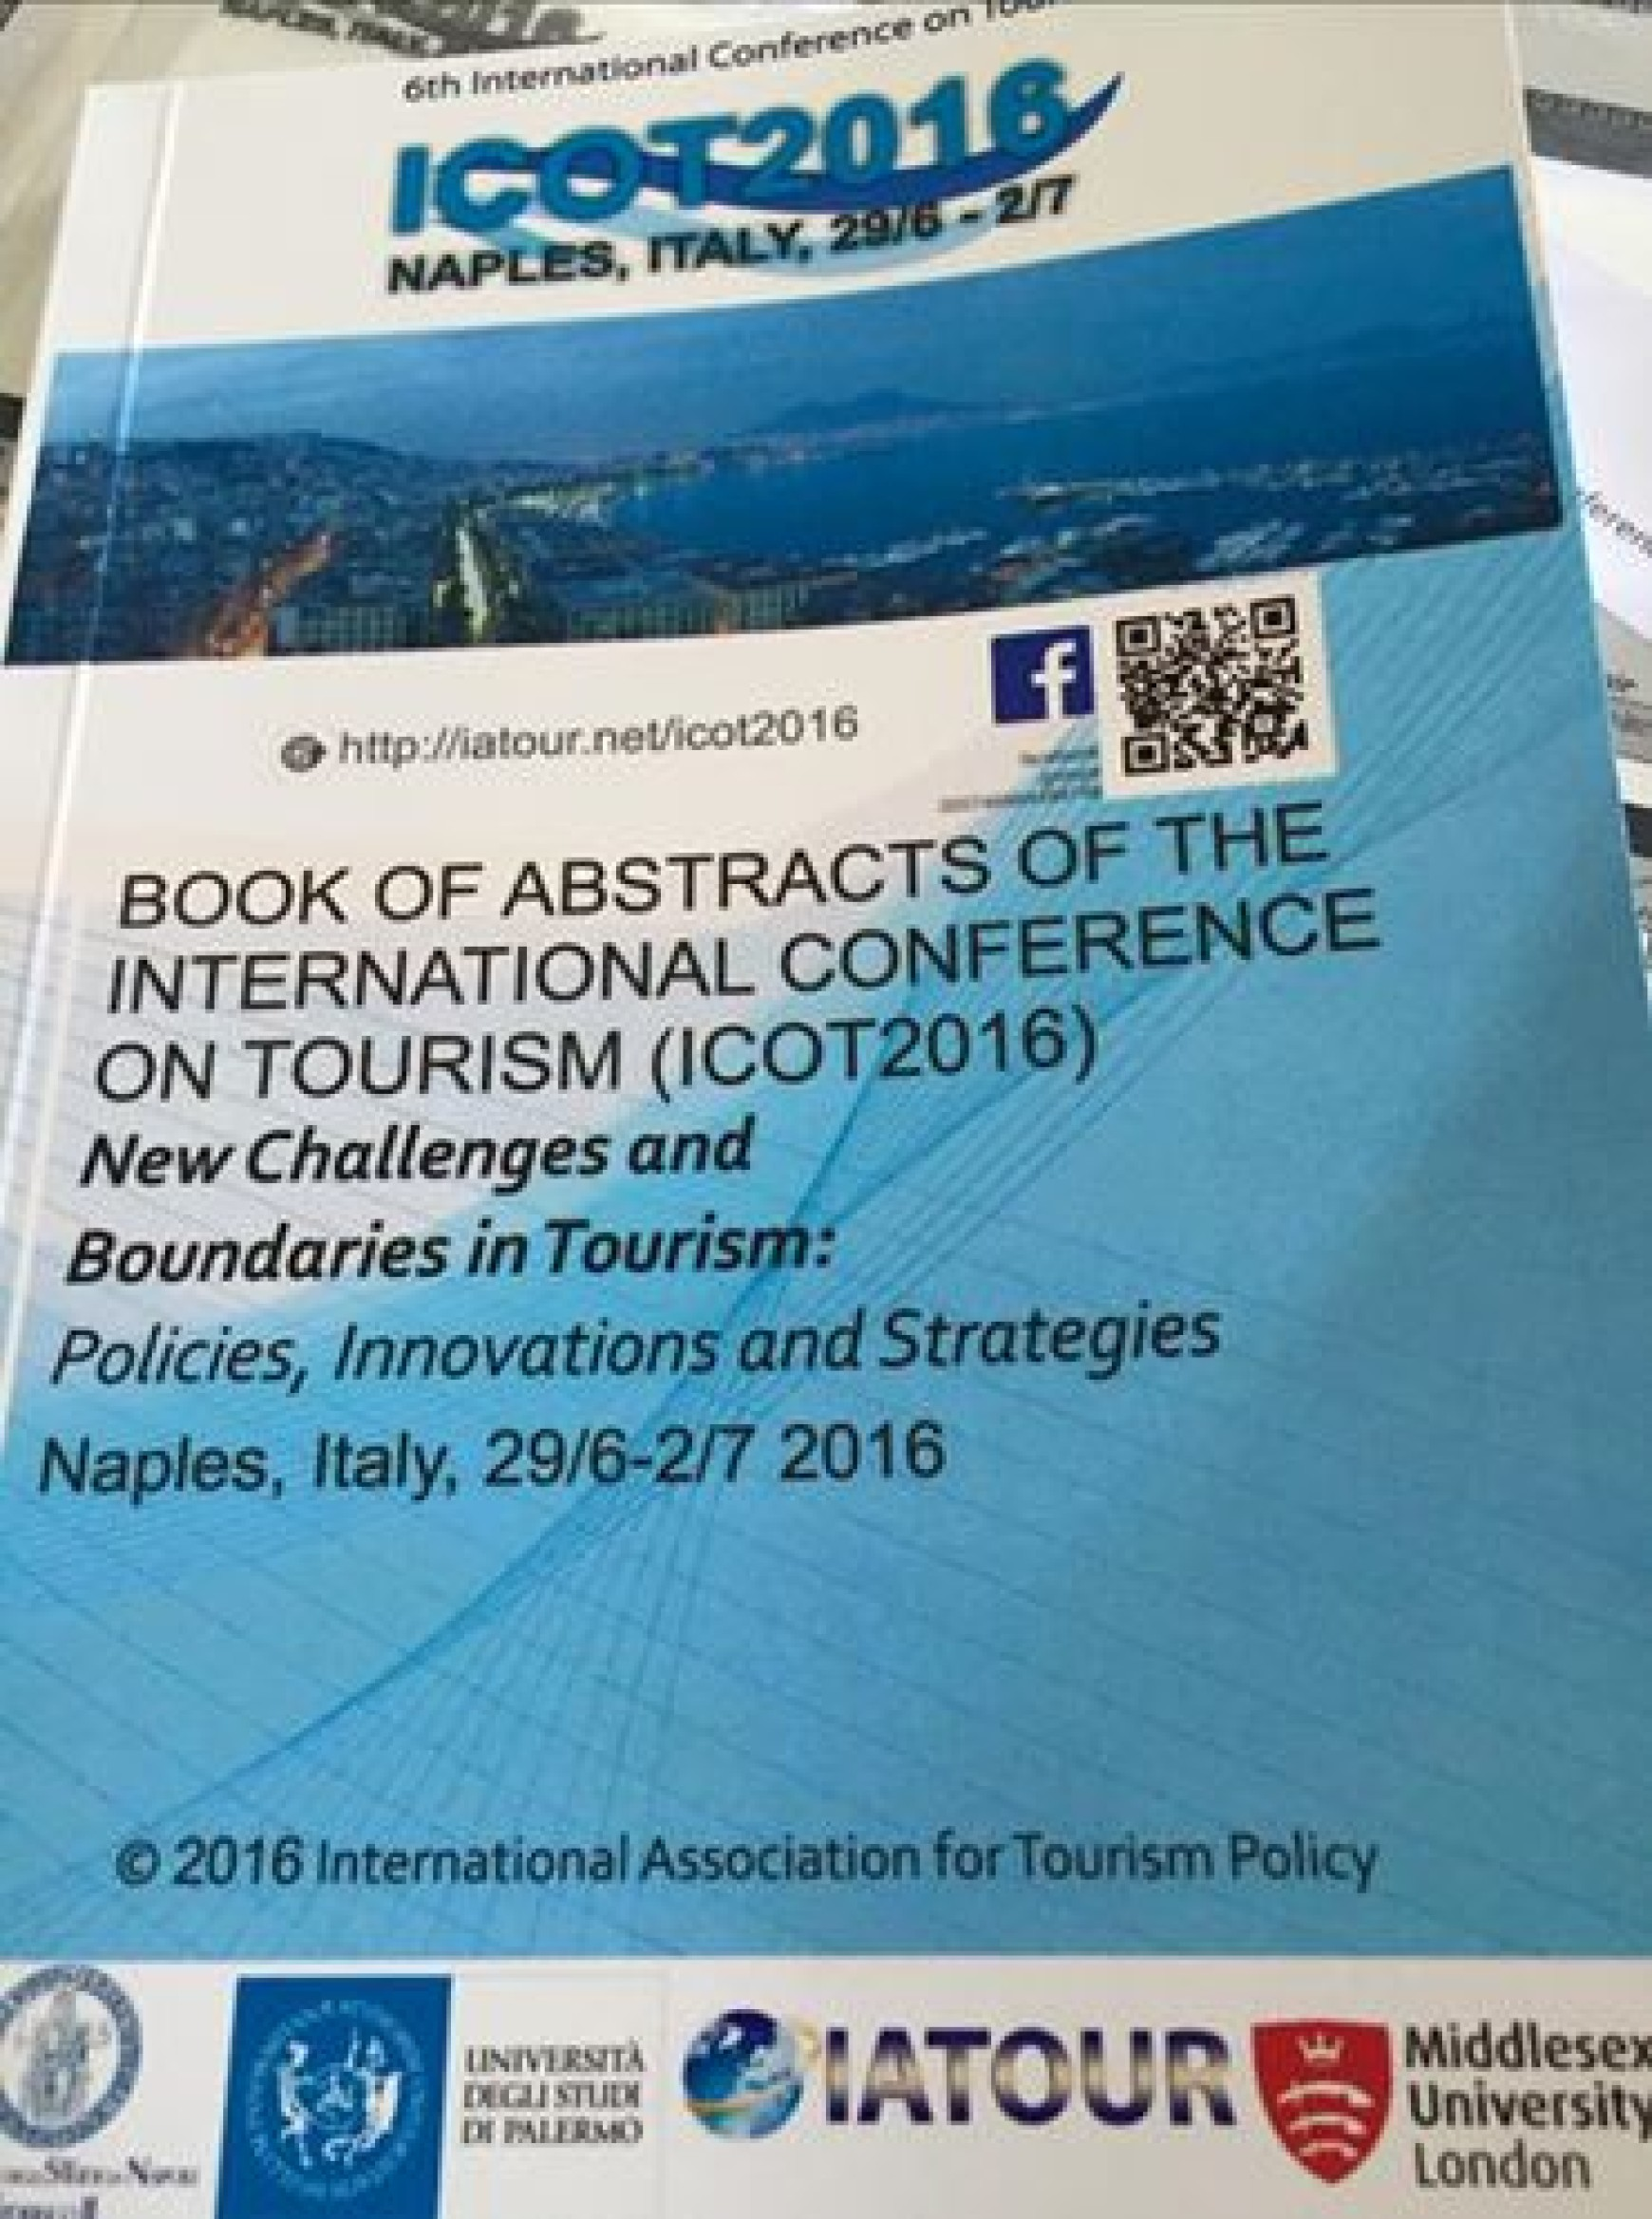 The importance of U.S. market for food tourism in Italy